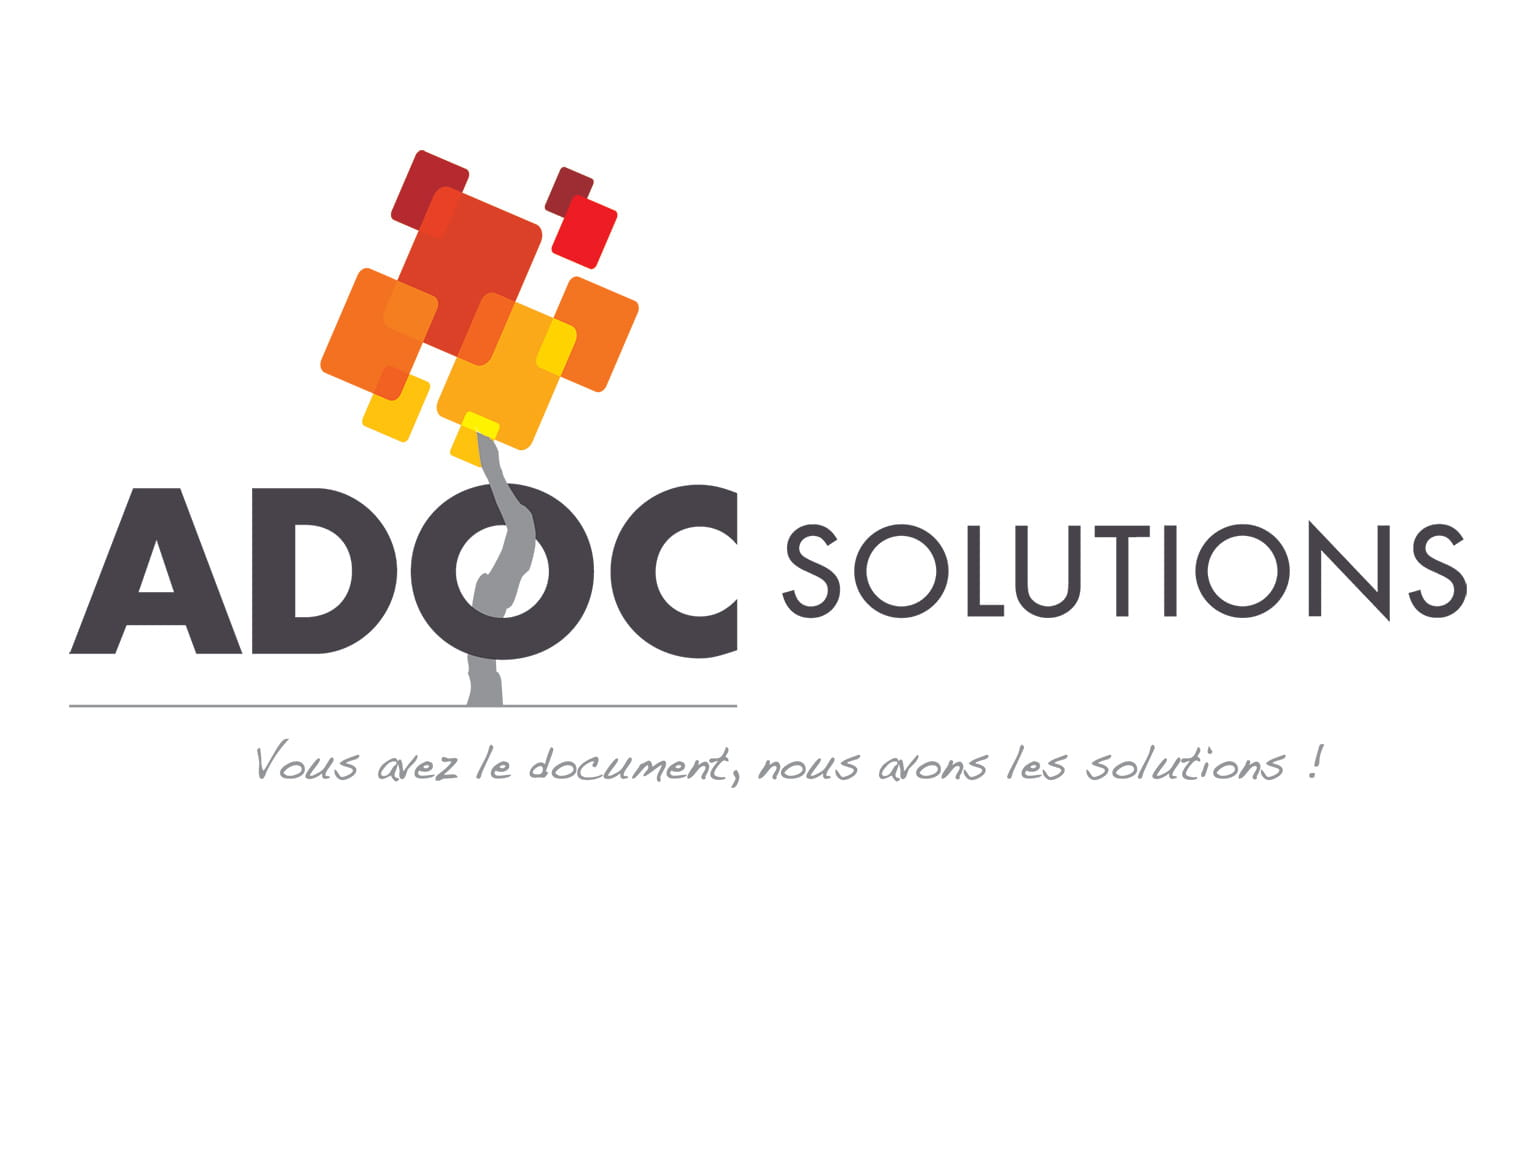 Adoc solutions dématérialisation Brother